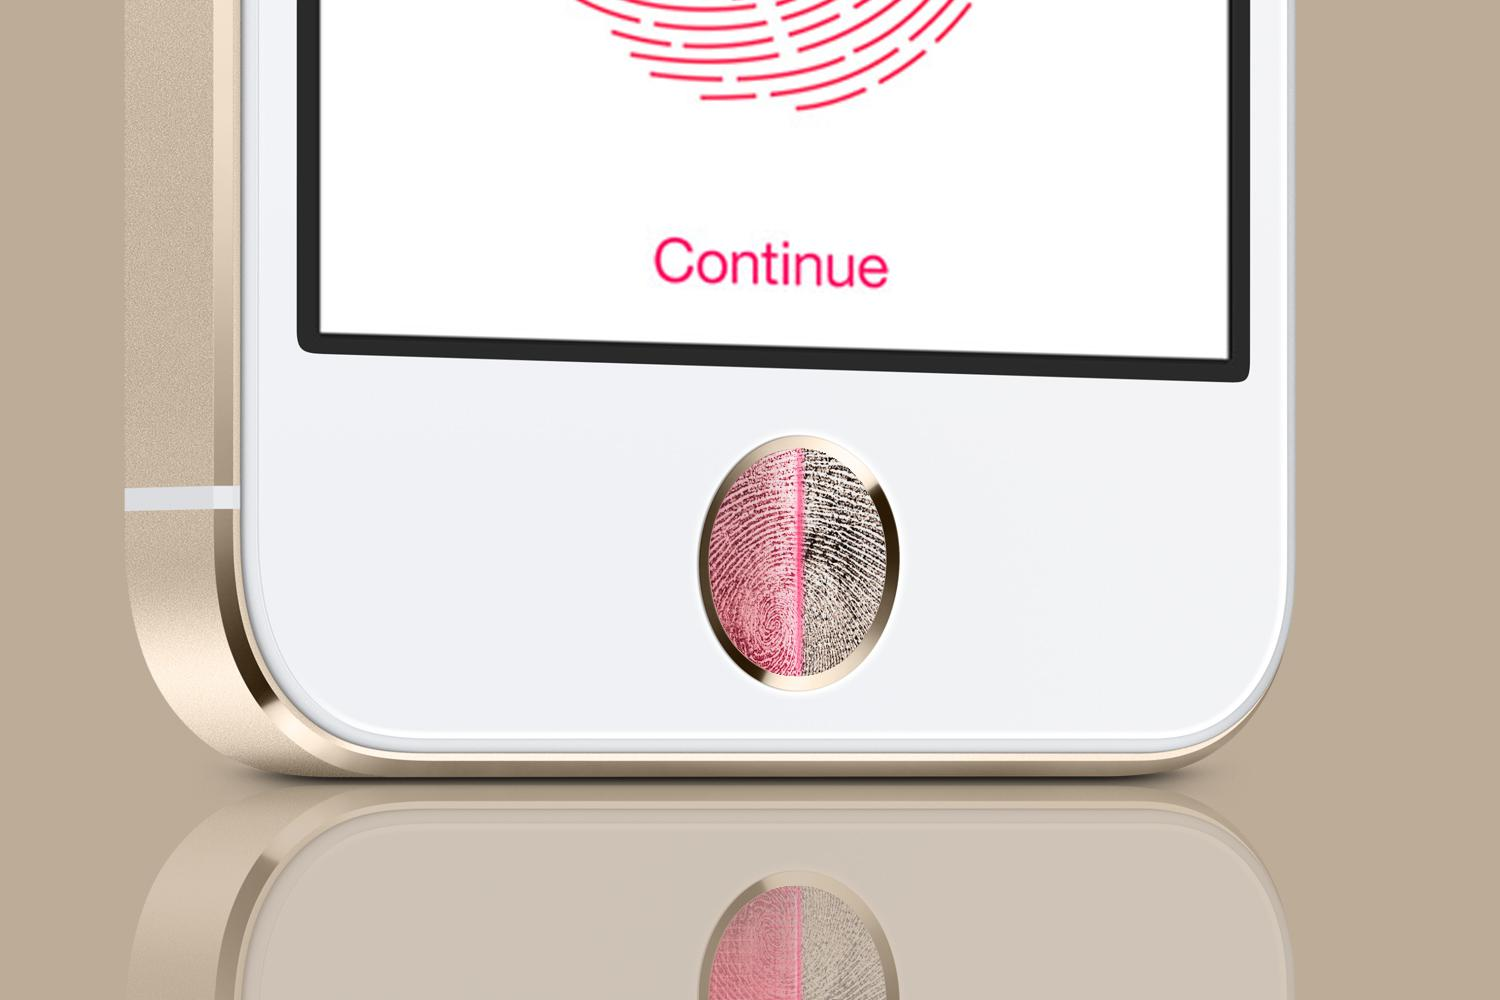 fingerprint lock for iphoneApple iPhone 5S Touch ID fingerprint sensor  What you need to know NVnLExKX